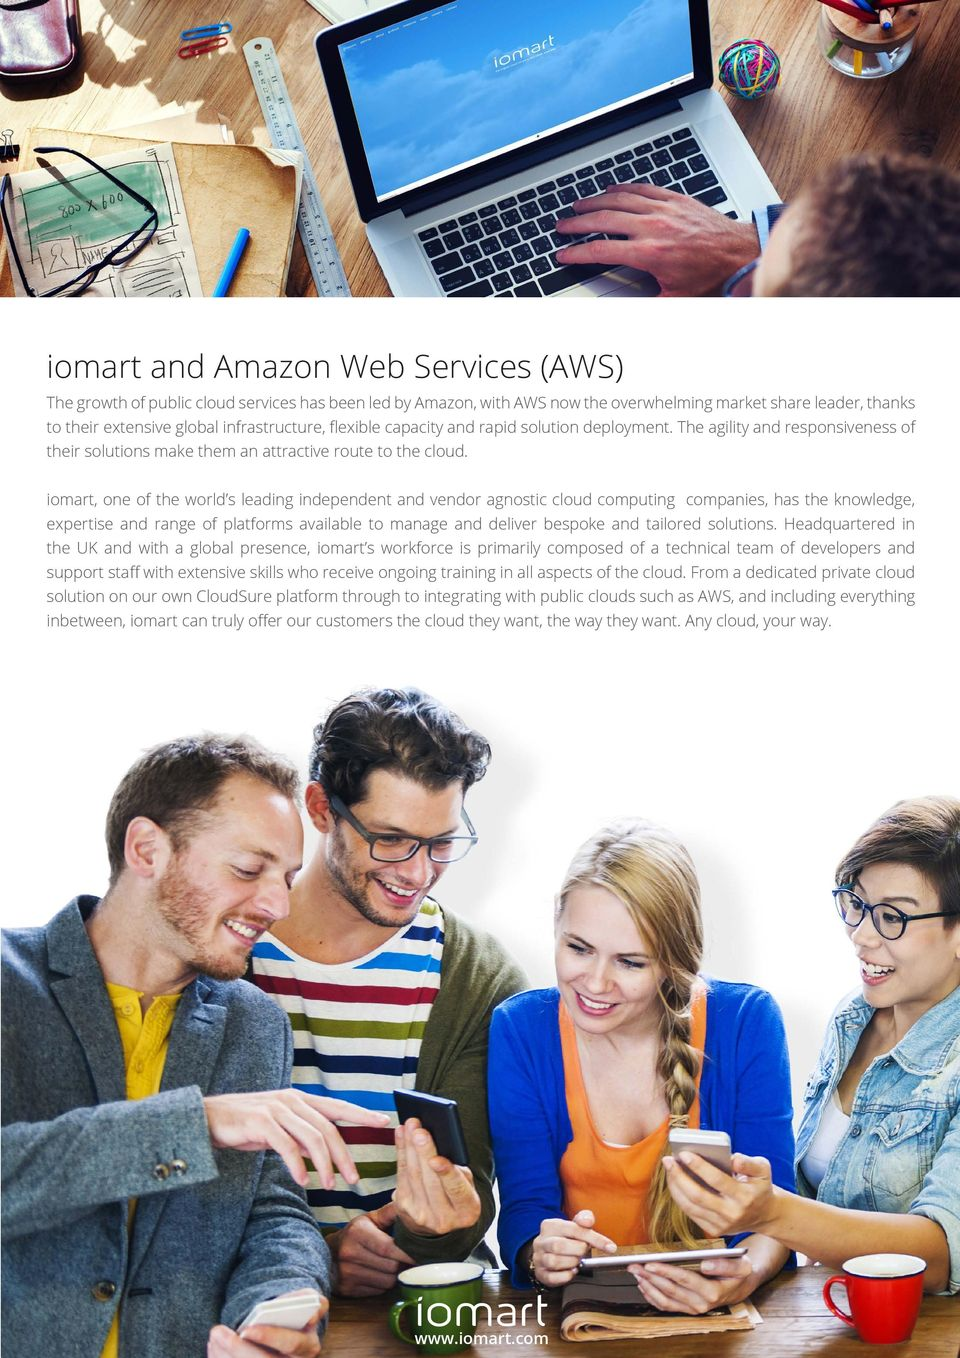 iomart, one of the world s leading independent and vendor agnostic cloud computing companies, has the knowledge, expertise and range of platforms available to manage and deliver bespoke and tailored